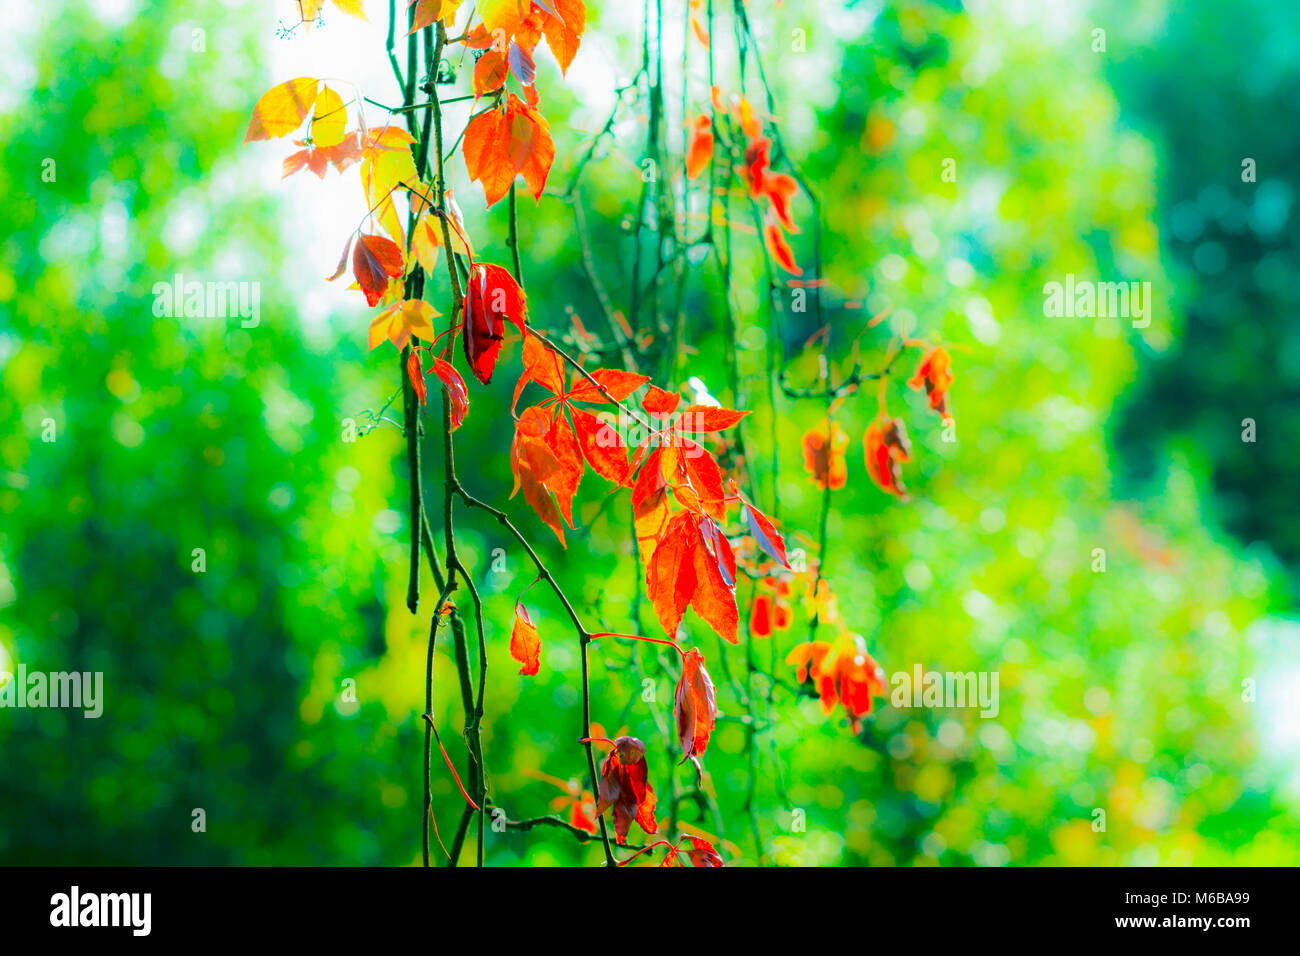 Backround with autumn leaves - Stock Image